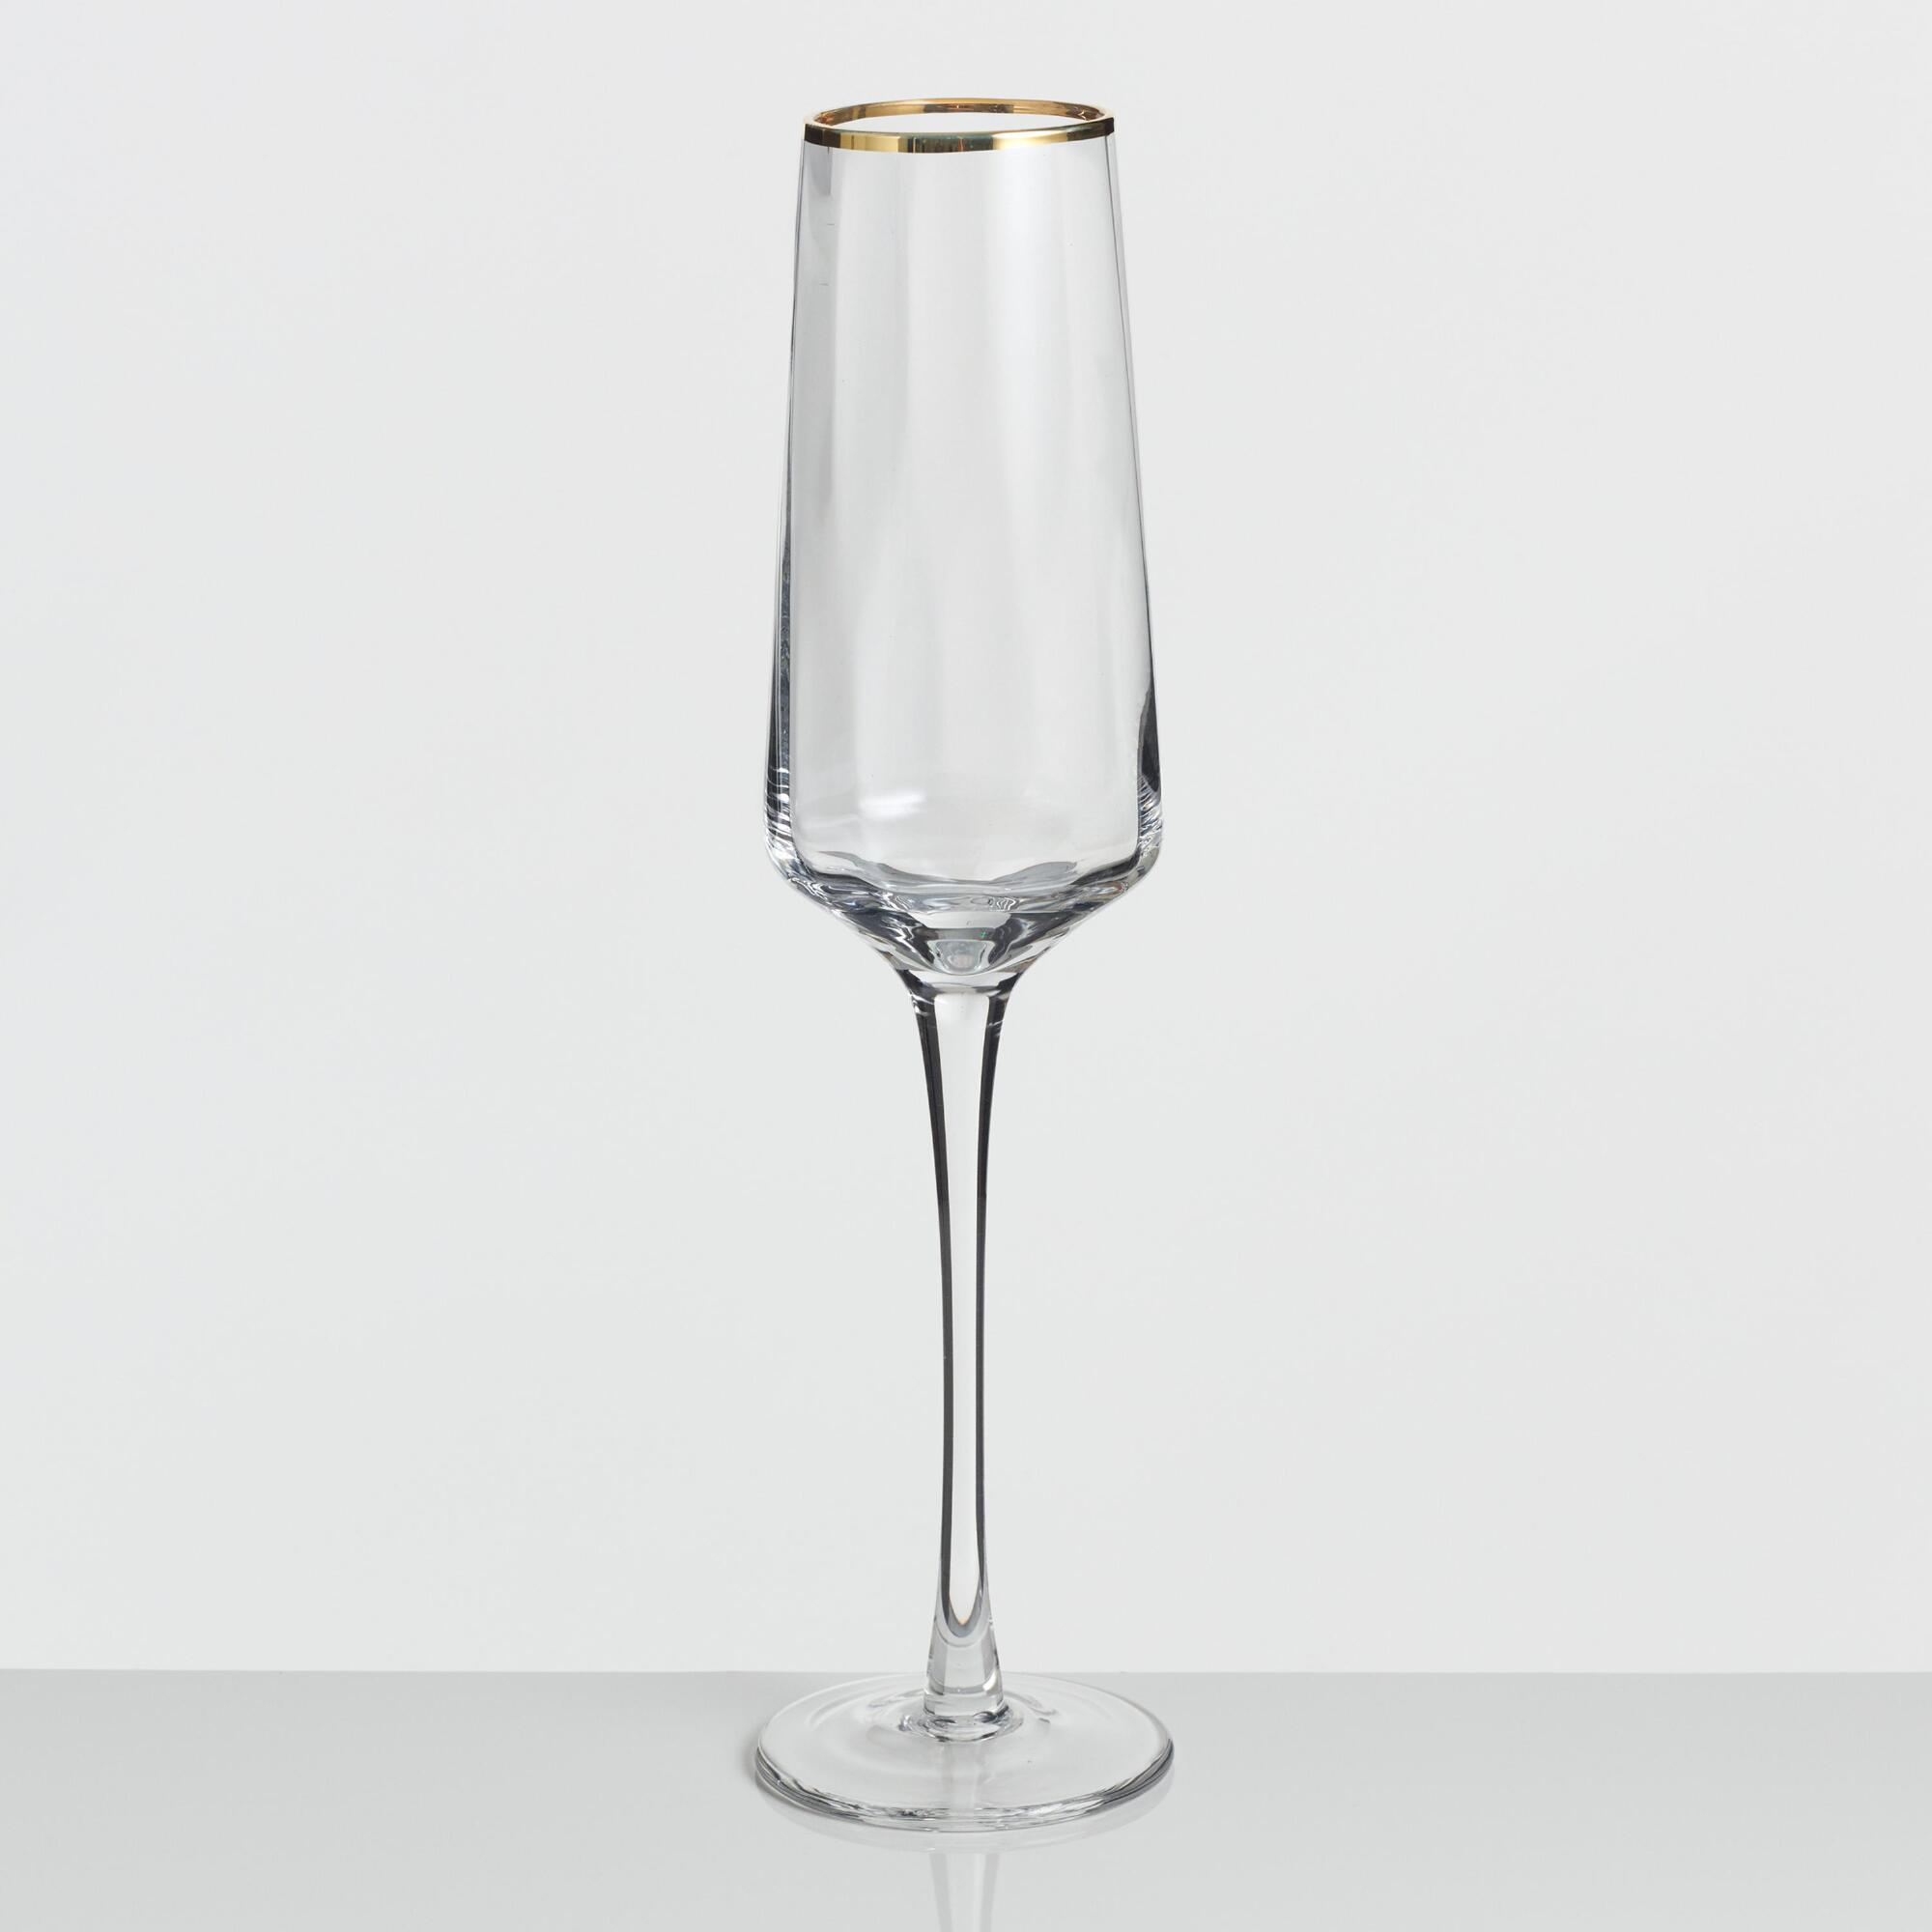 Gold Rim Optic Champagne Flutes Set of 4 by World Market